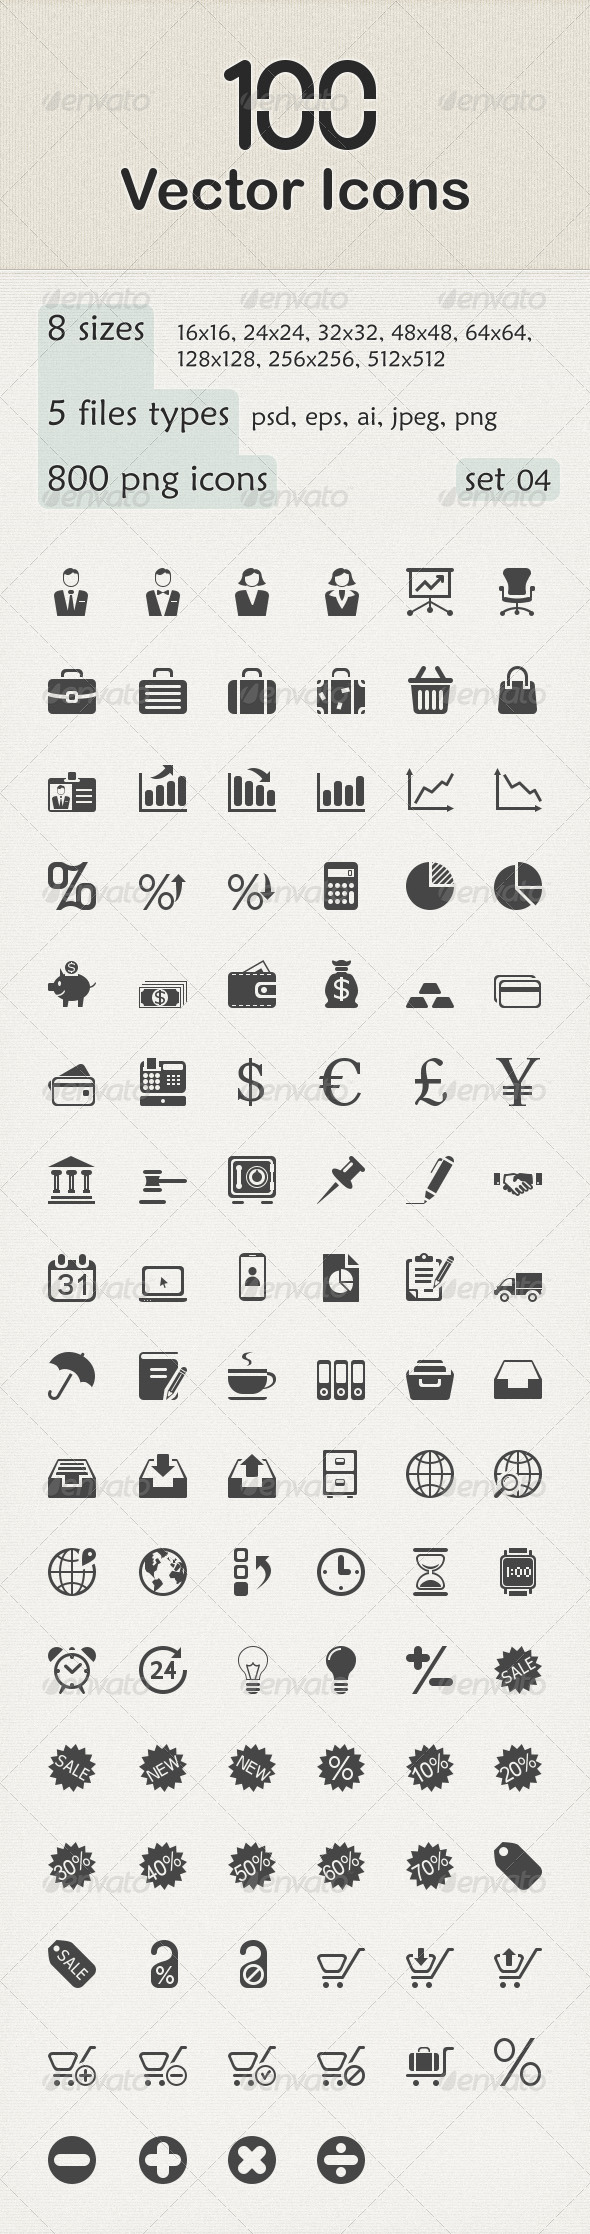 GraphicRiver 100 Vector Icons 6199502